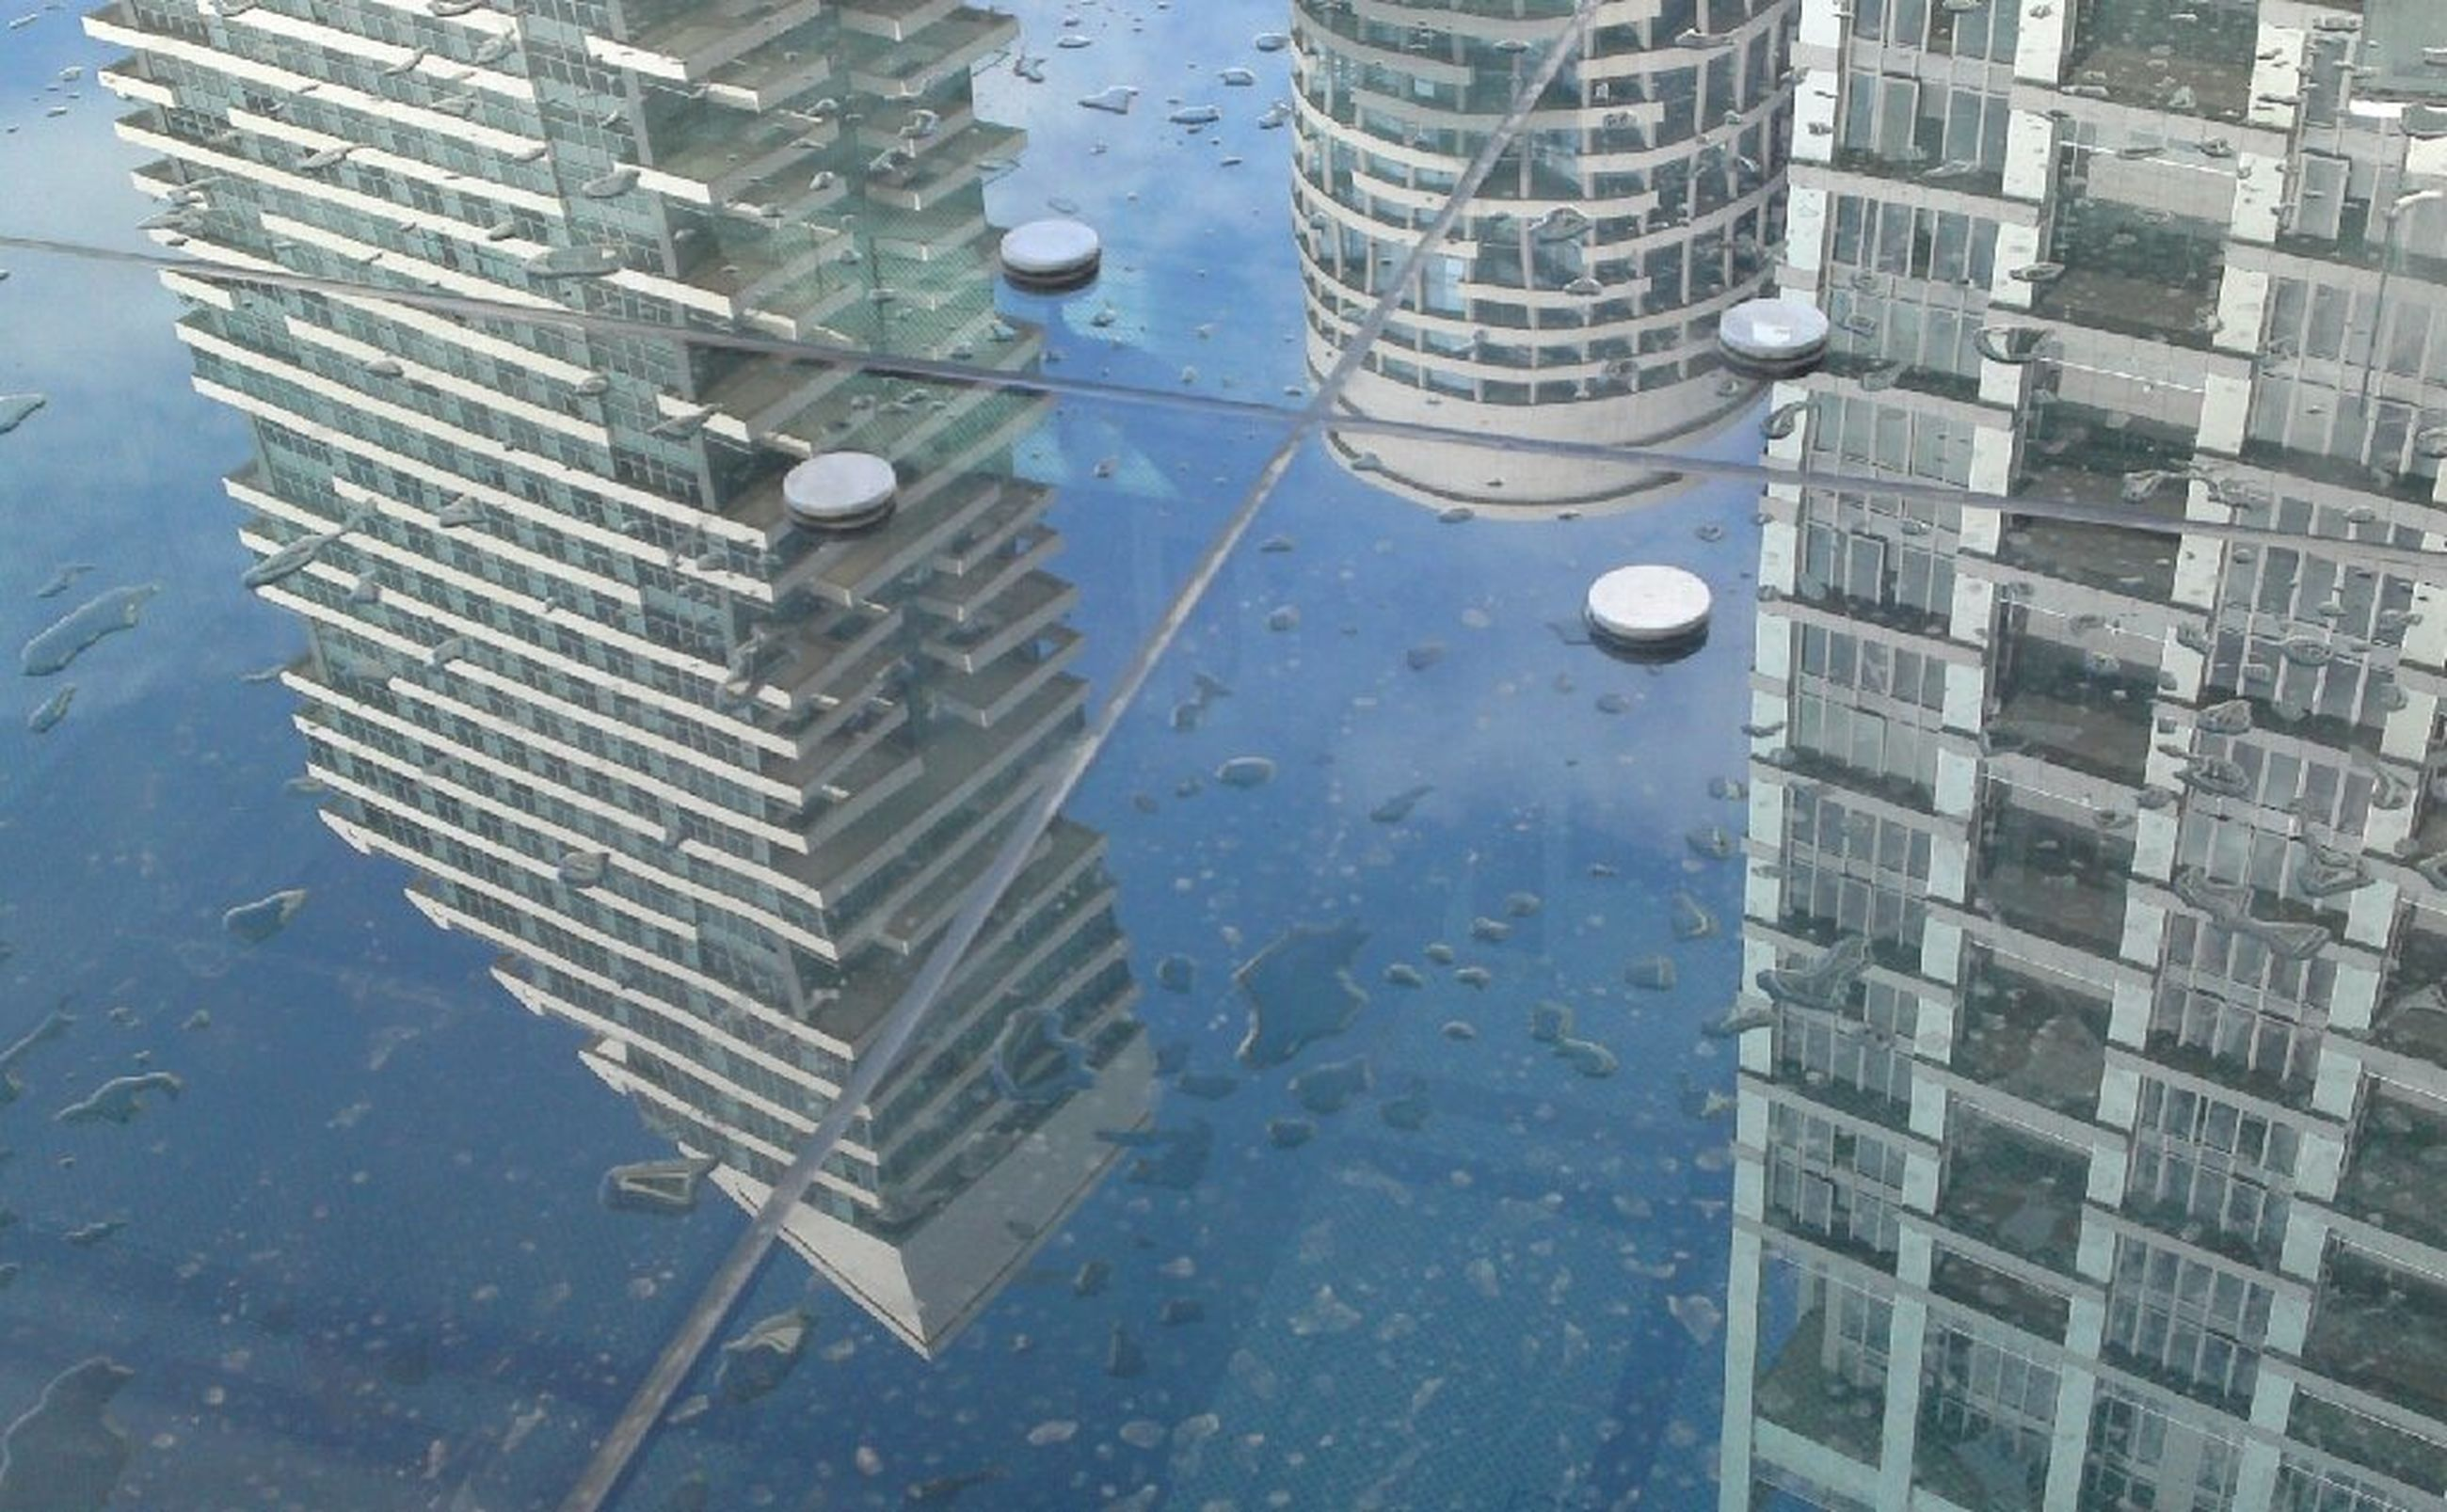 building exterior, architecture, built structure, city, reflection, modern, glass - material, building, water, skyscraper, office building, window, low angle view, day, puddle, tall - high, wet, tower, outdoors, sky